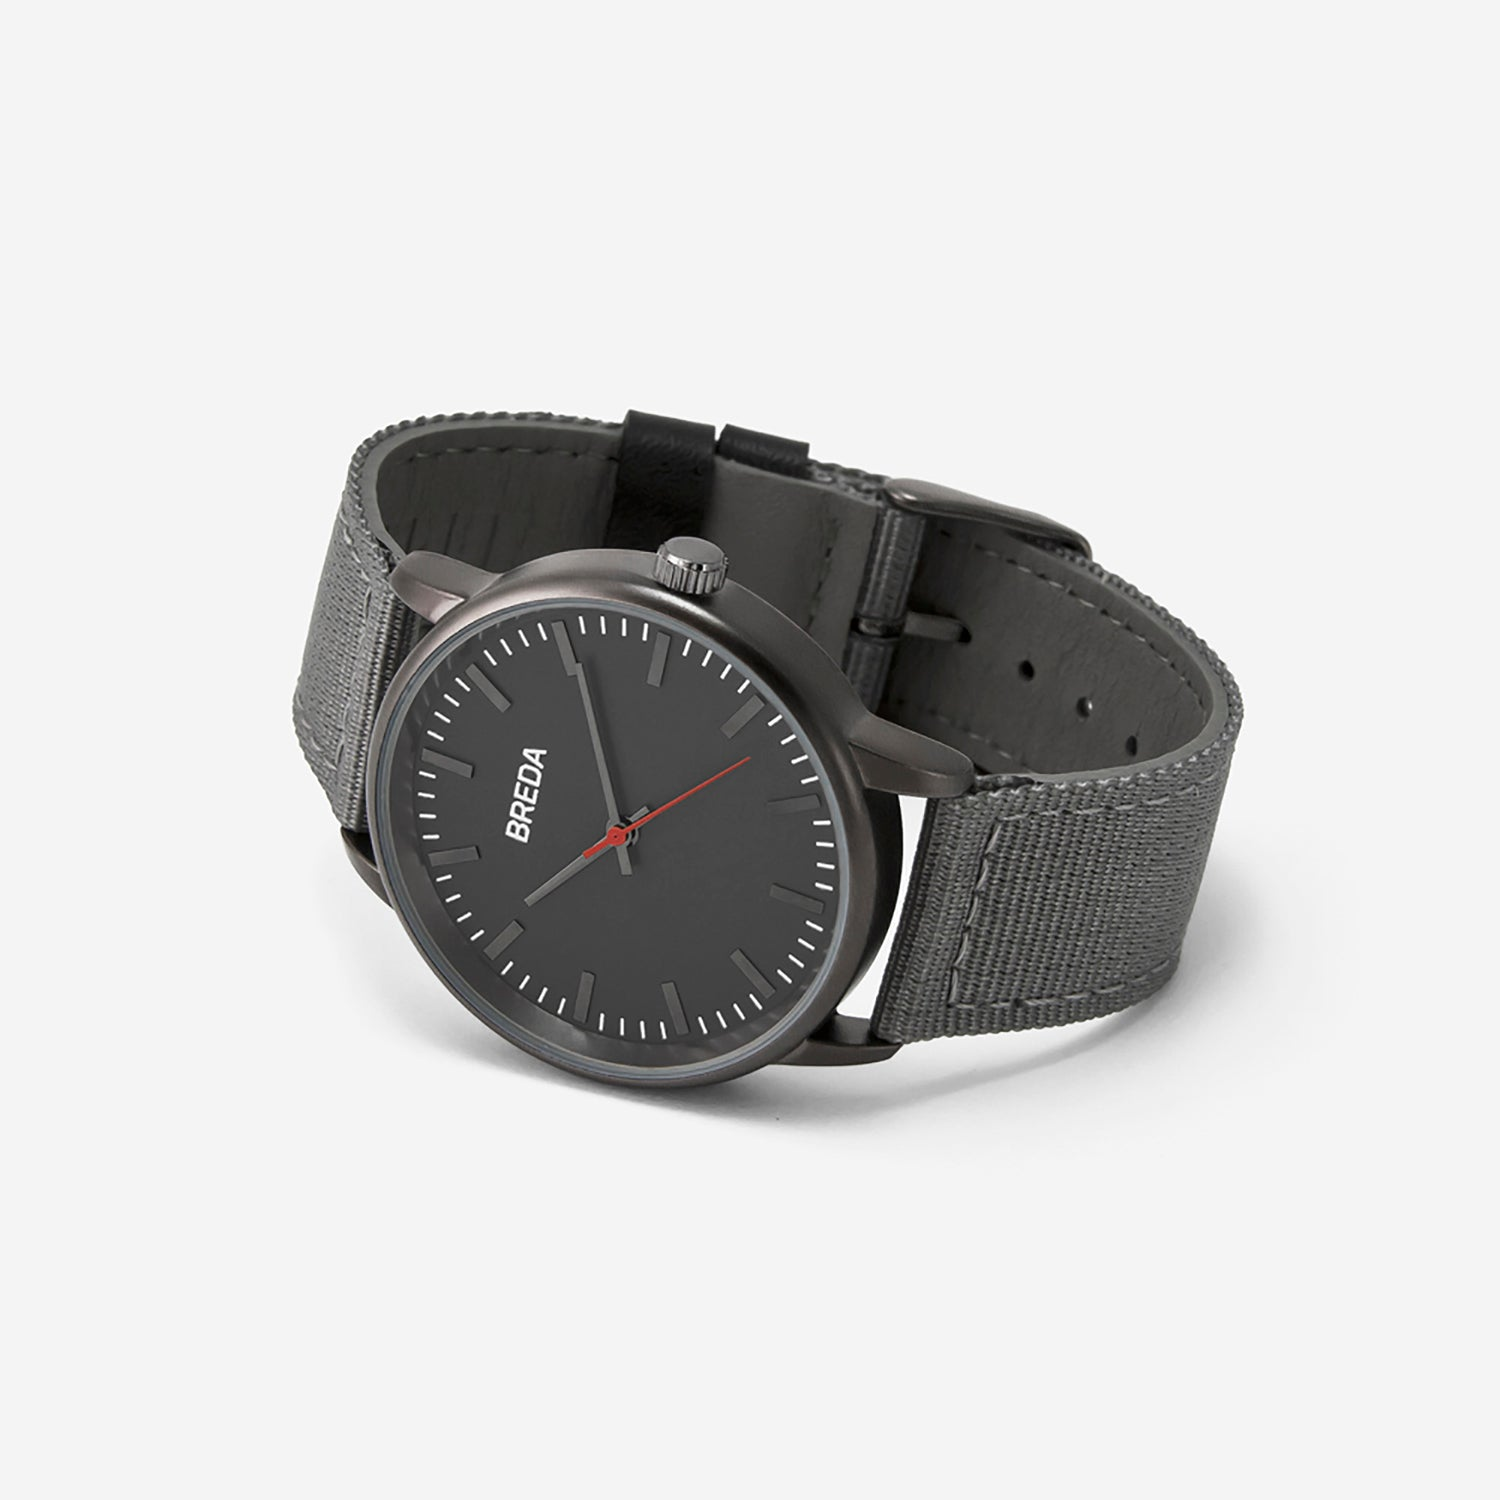 breda-valor-1707a-gunmetal-gray-watch-angle